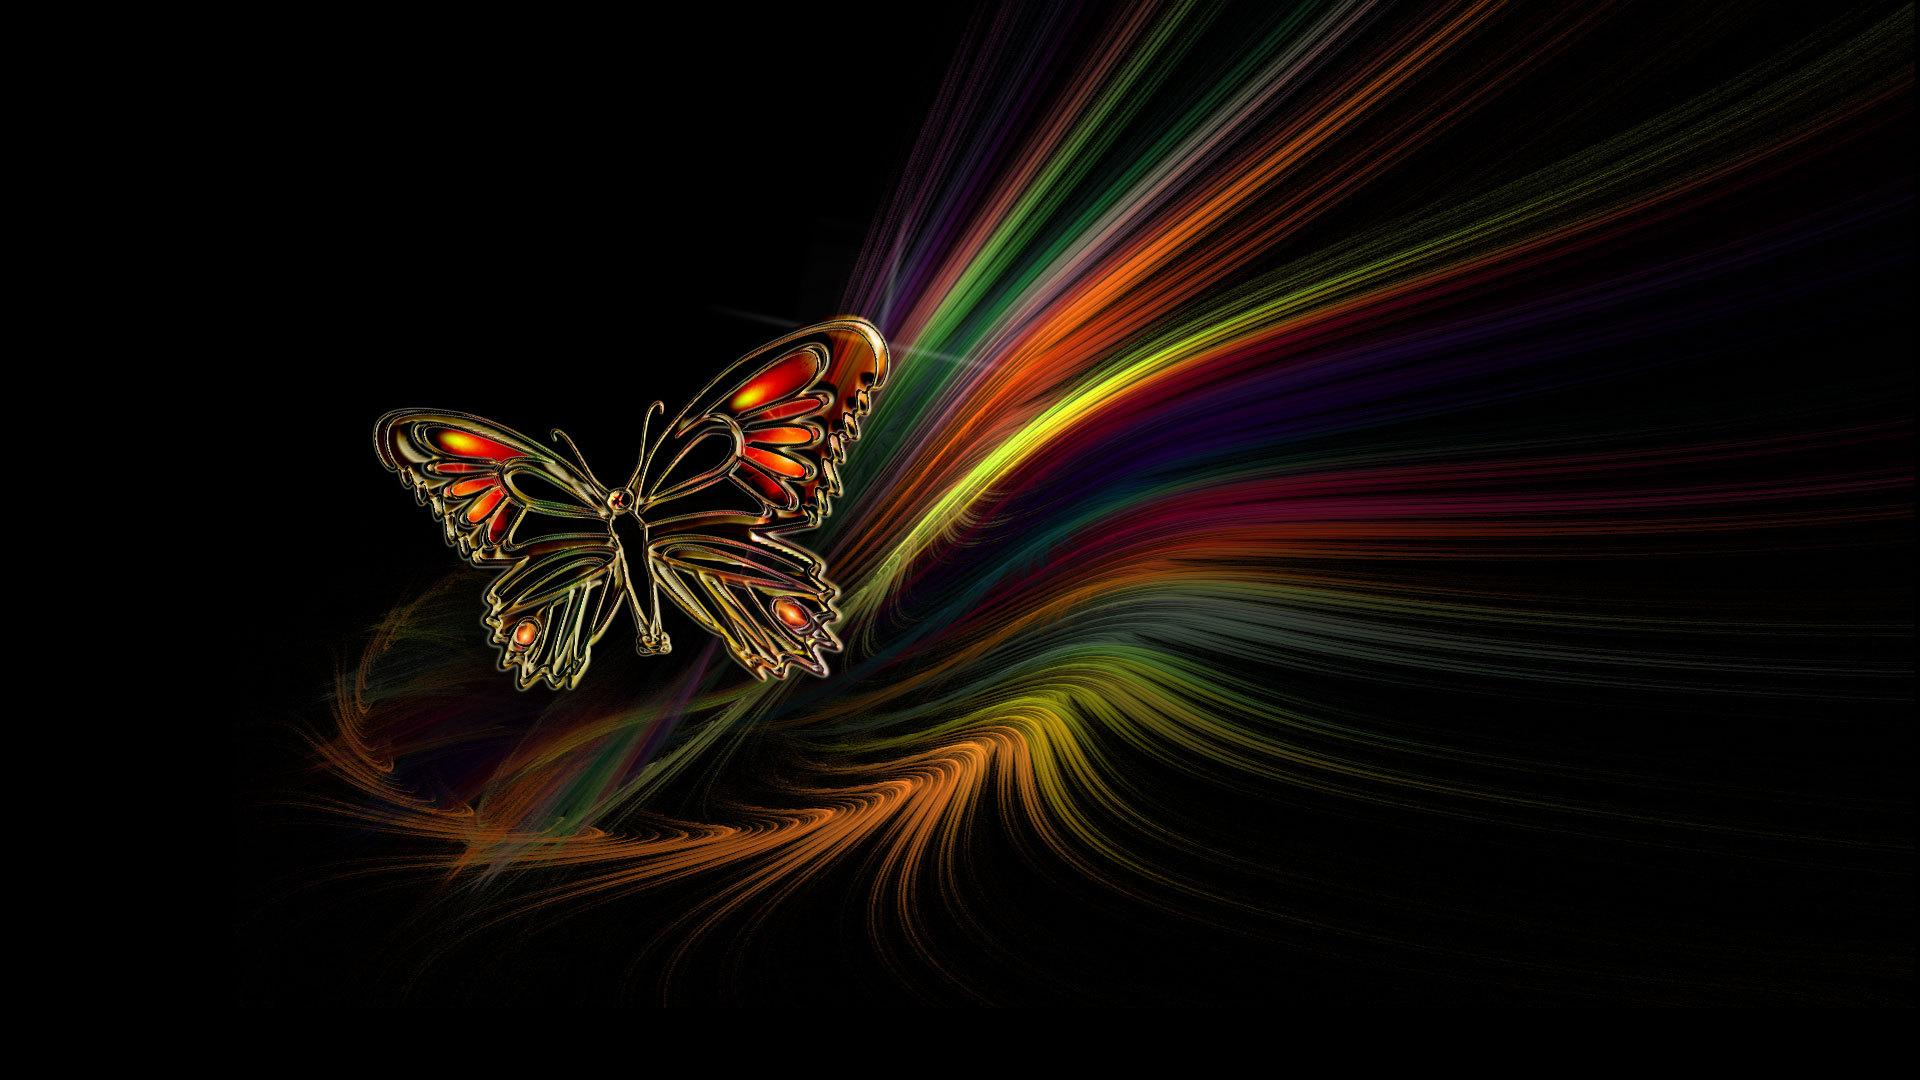 Butterfly Abstract HD Wallpaper Cool Unique HD Wallpapers 1920x1080